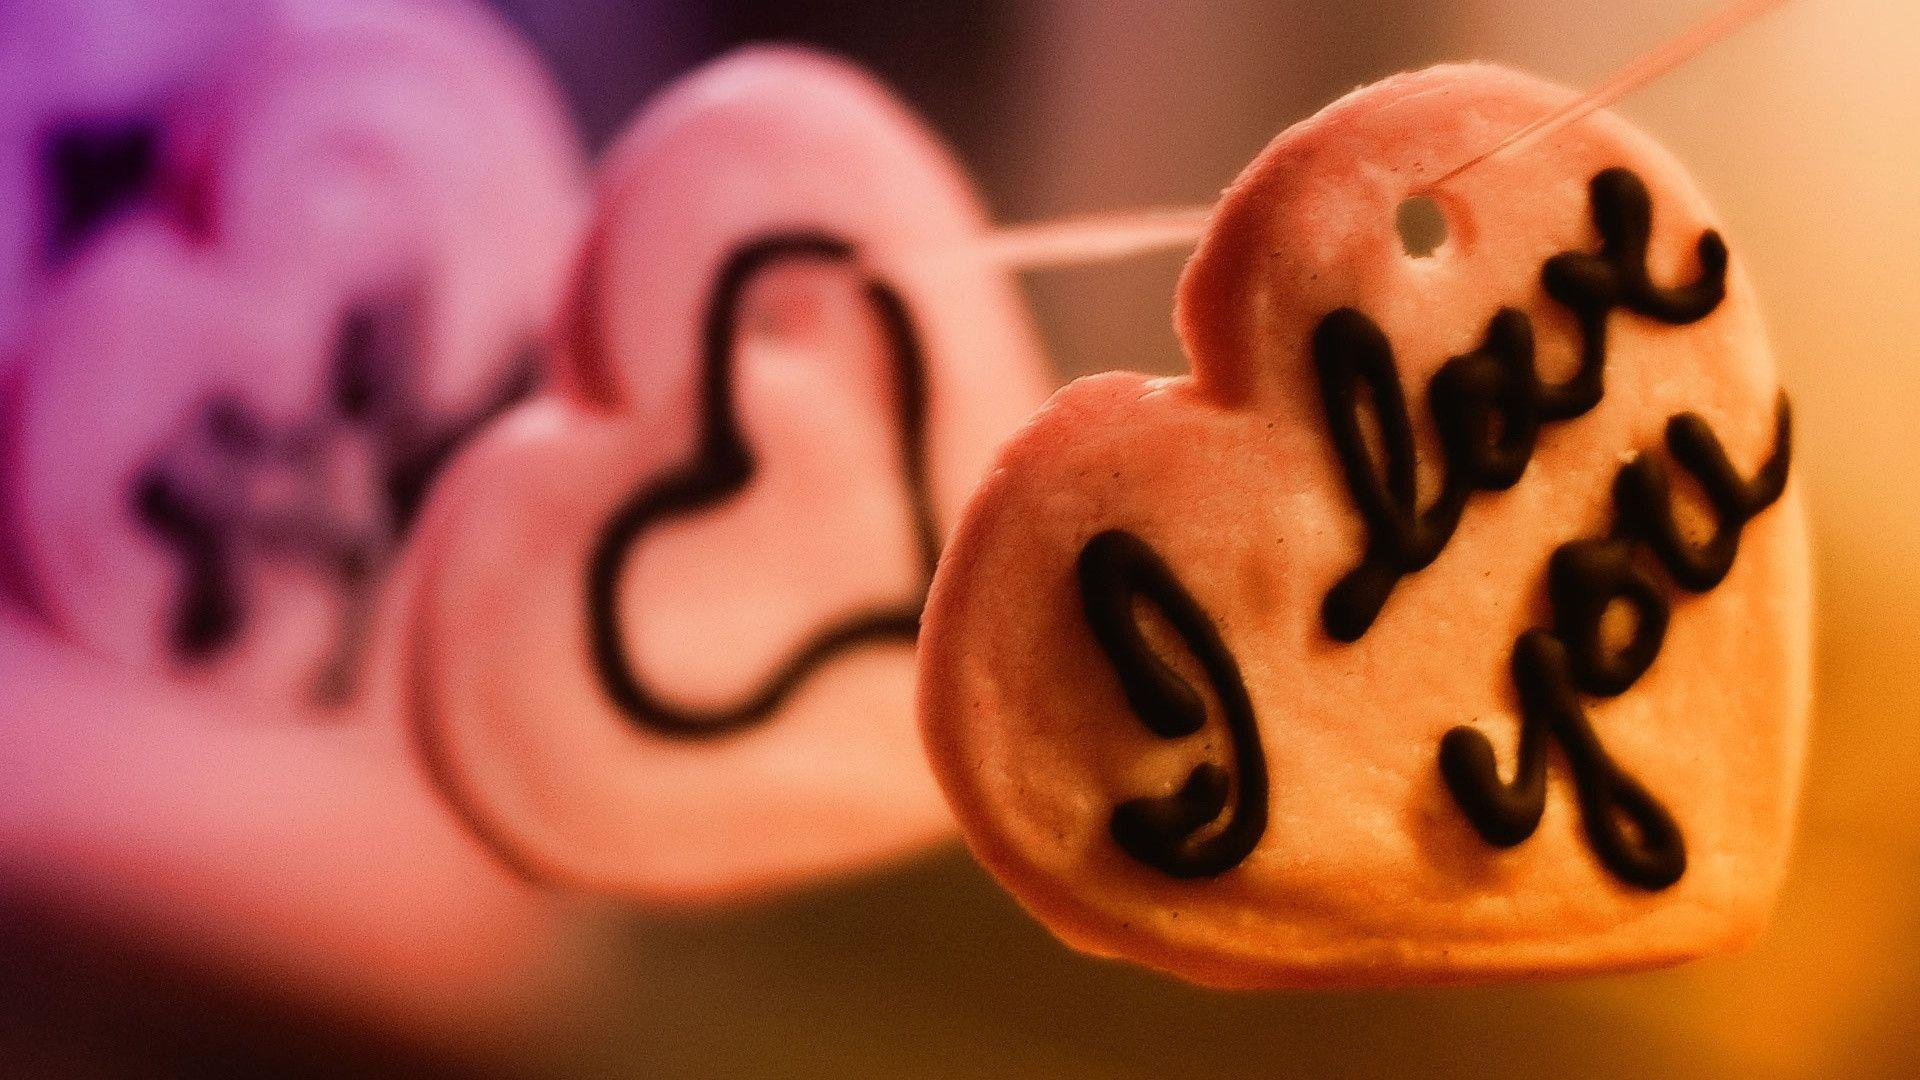 I love You 2 Wallpapers   HD Wallpapers